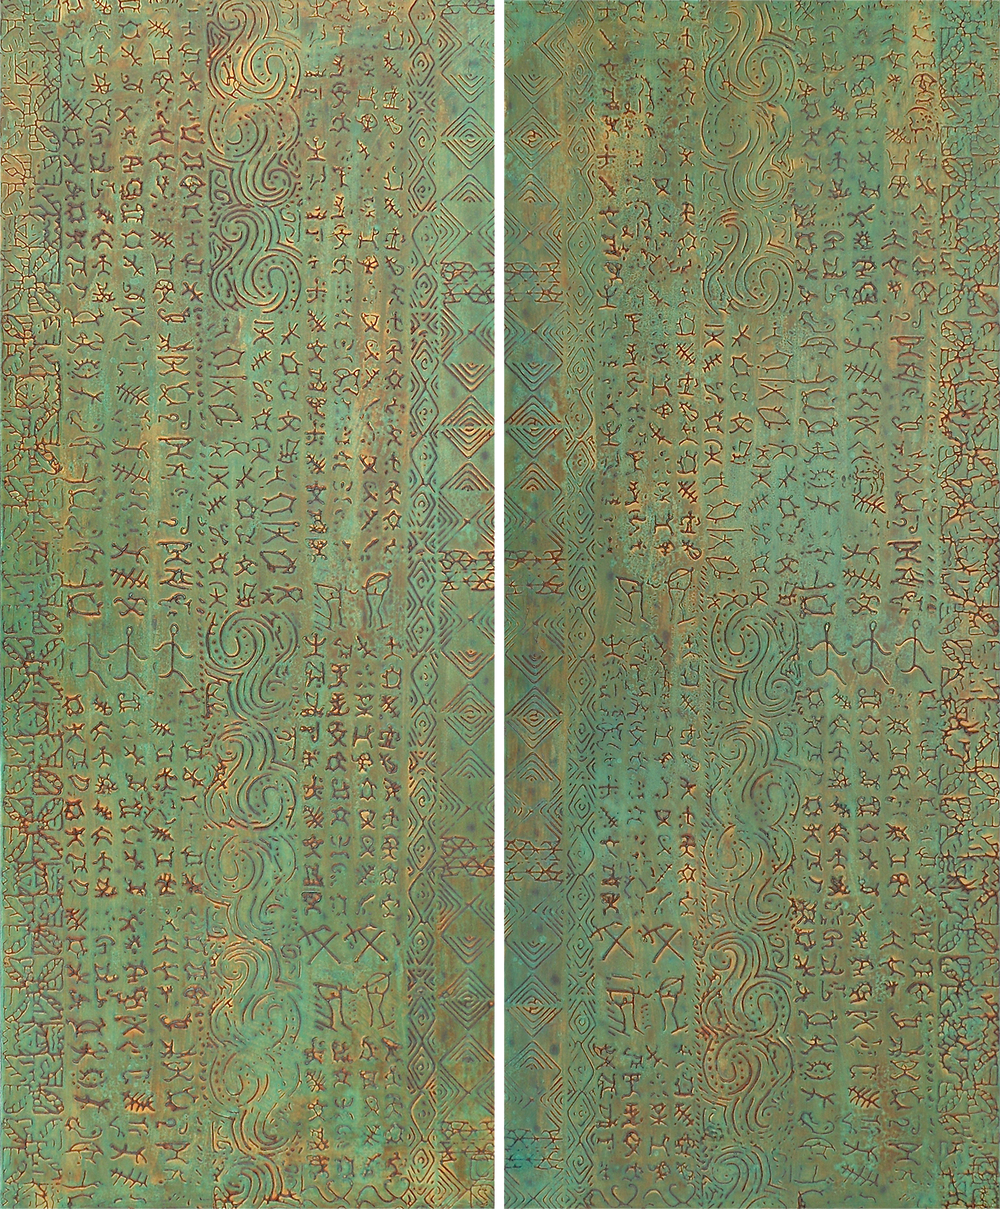 "Doors With a Past 1 & 2 @ 20"" W x 48"" H x 2"" D Acrylic & oil on archival board"